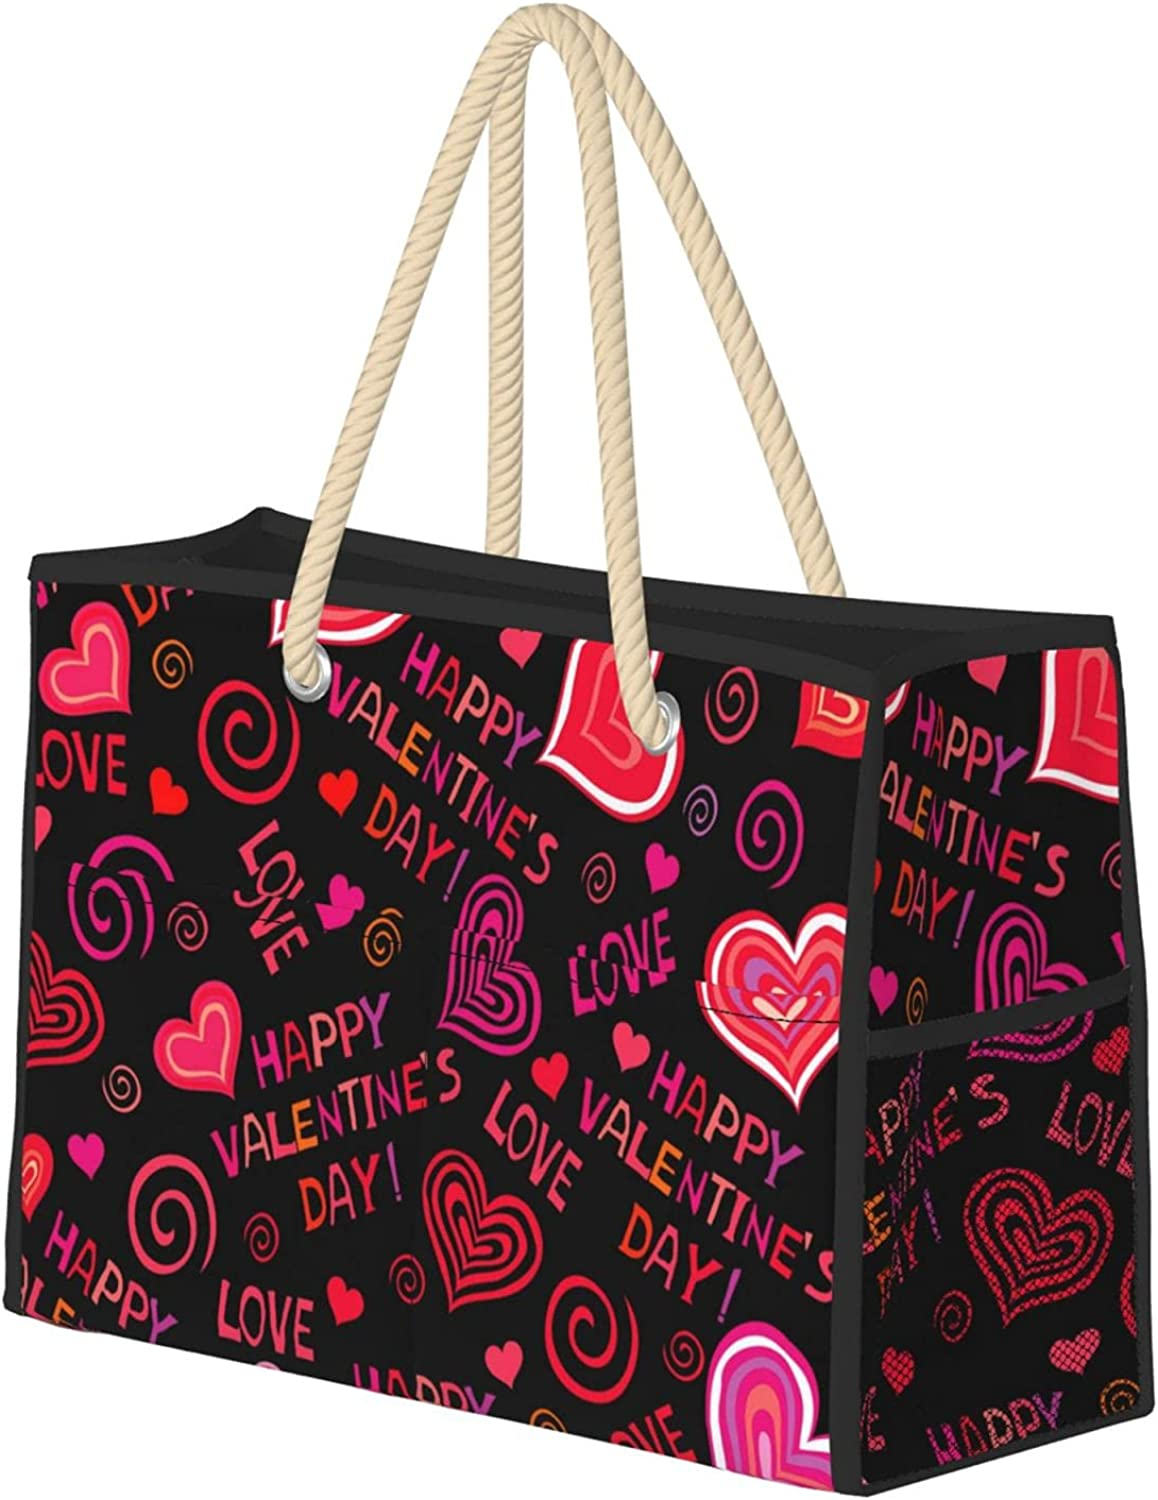 Valentines Day Women Beach Bag Utility Tote Travel Today's OFFicial only Reusable